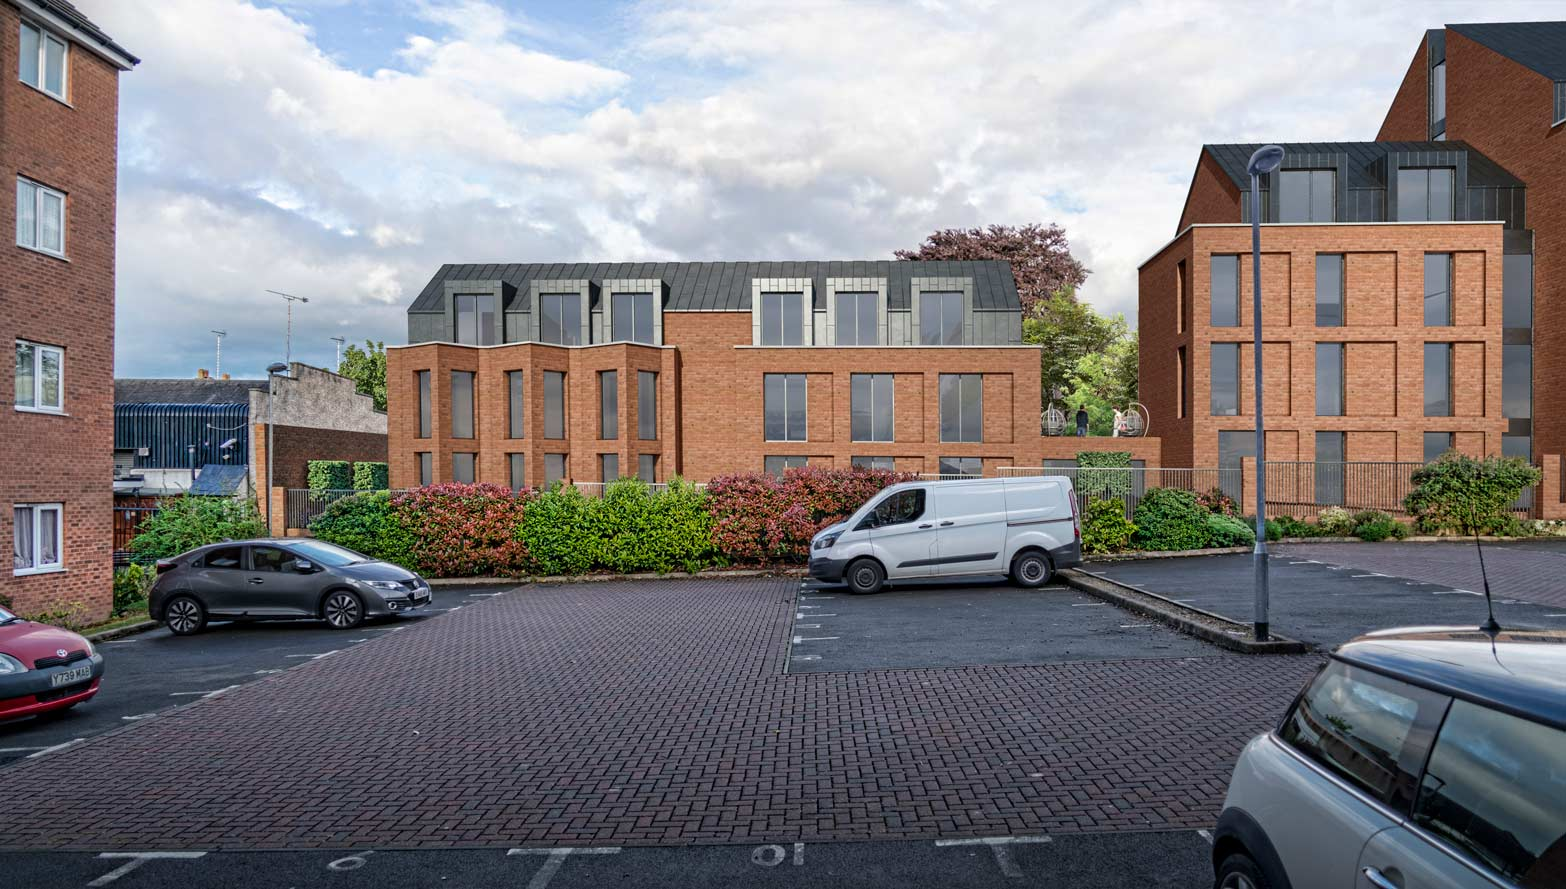 Luxury Student Accommodation CGI and Aerial imagery